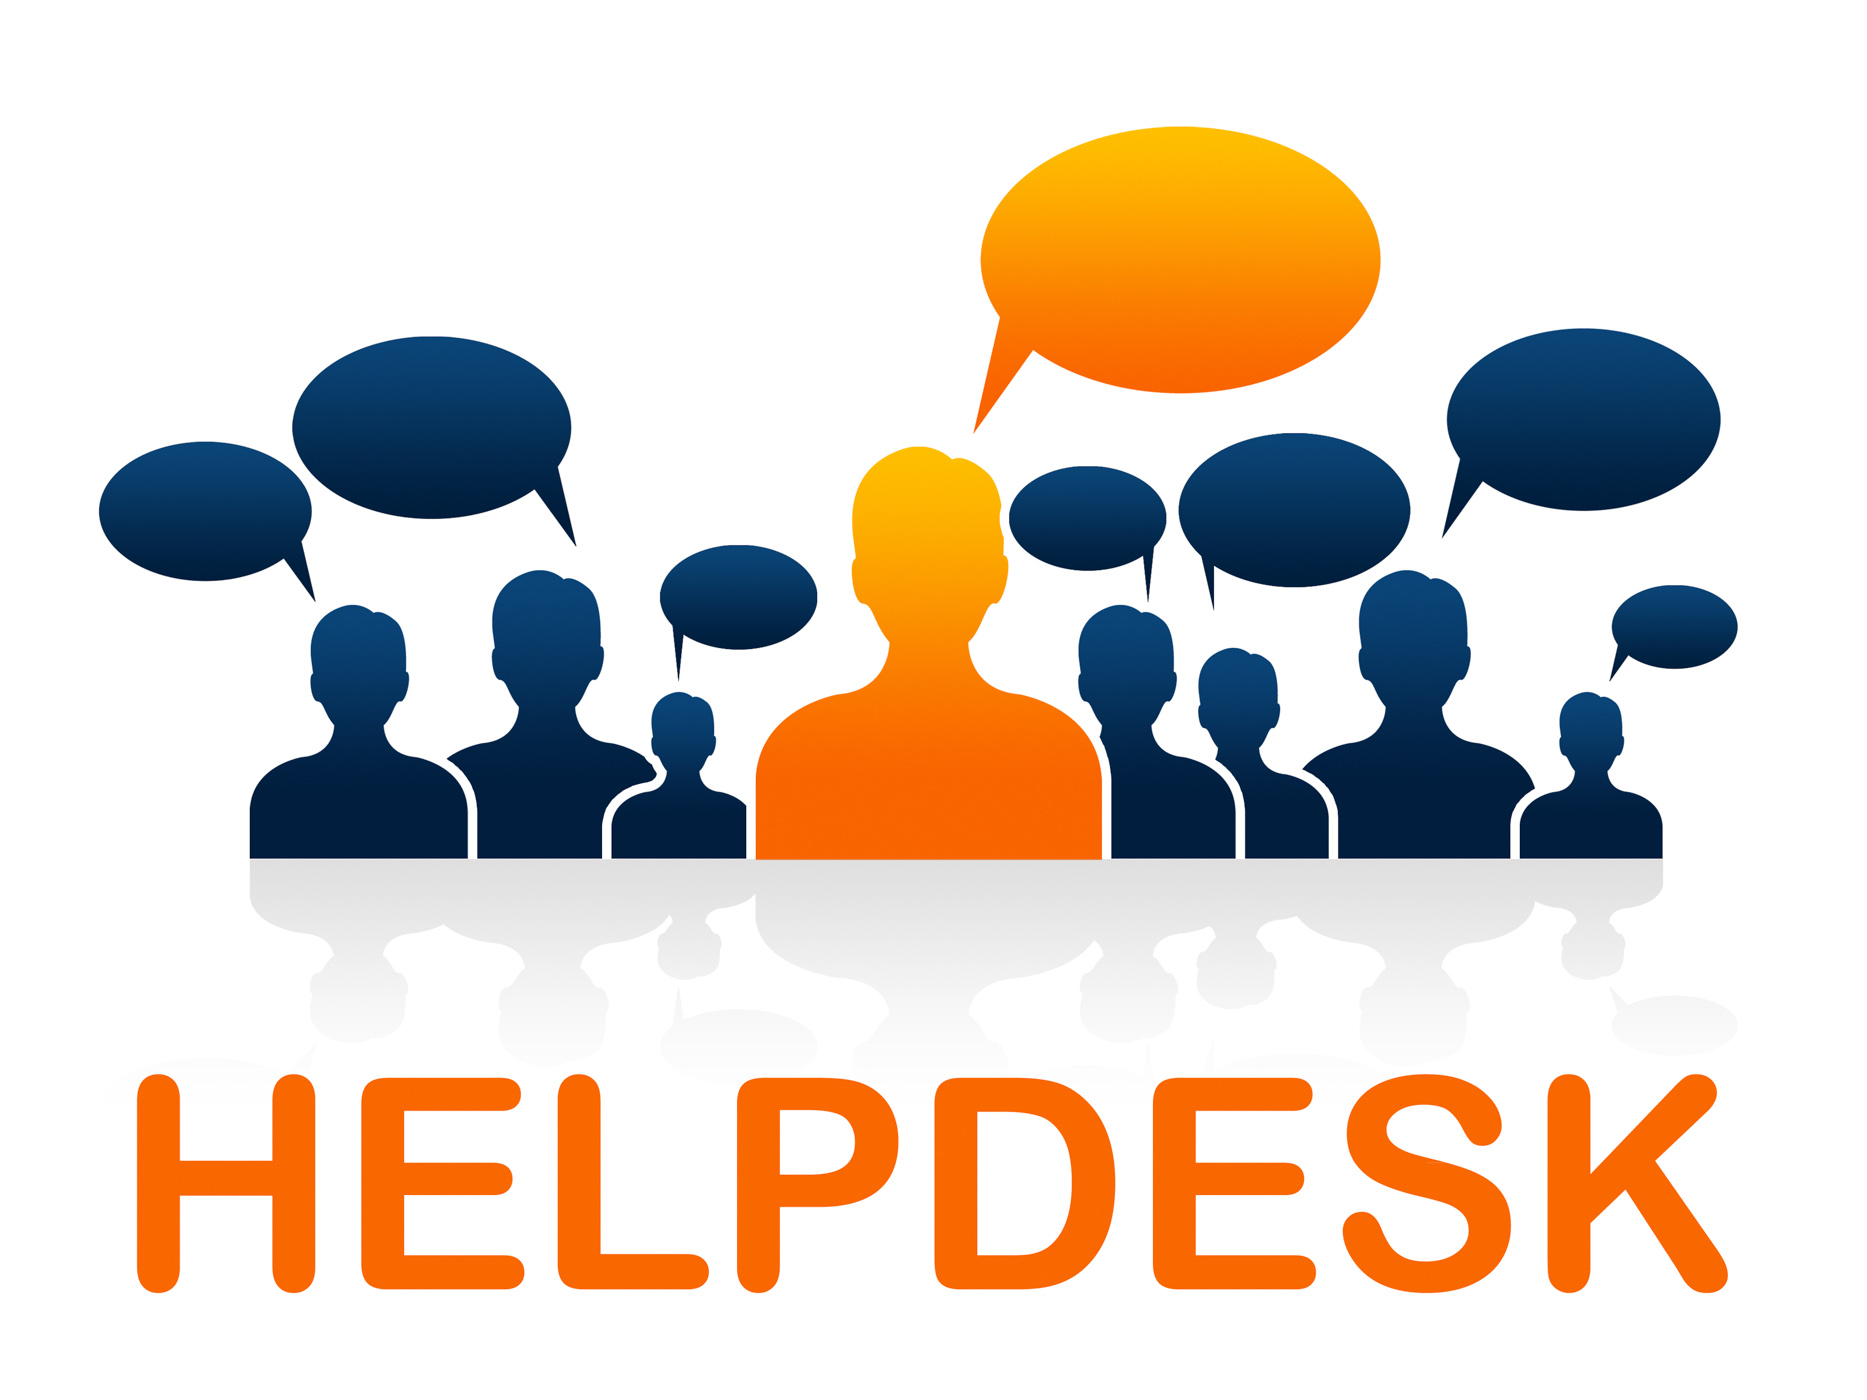 Customer service means help desk and advice photo